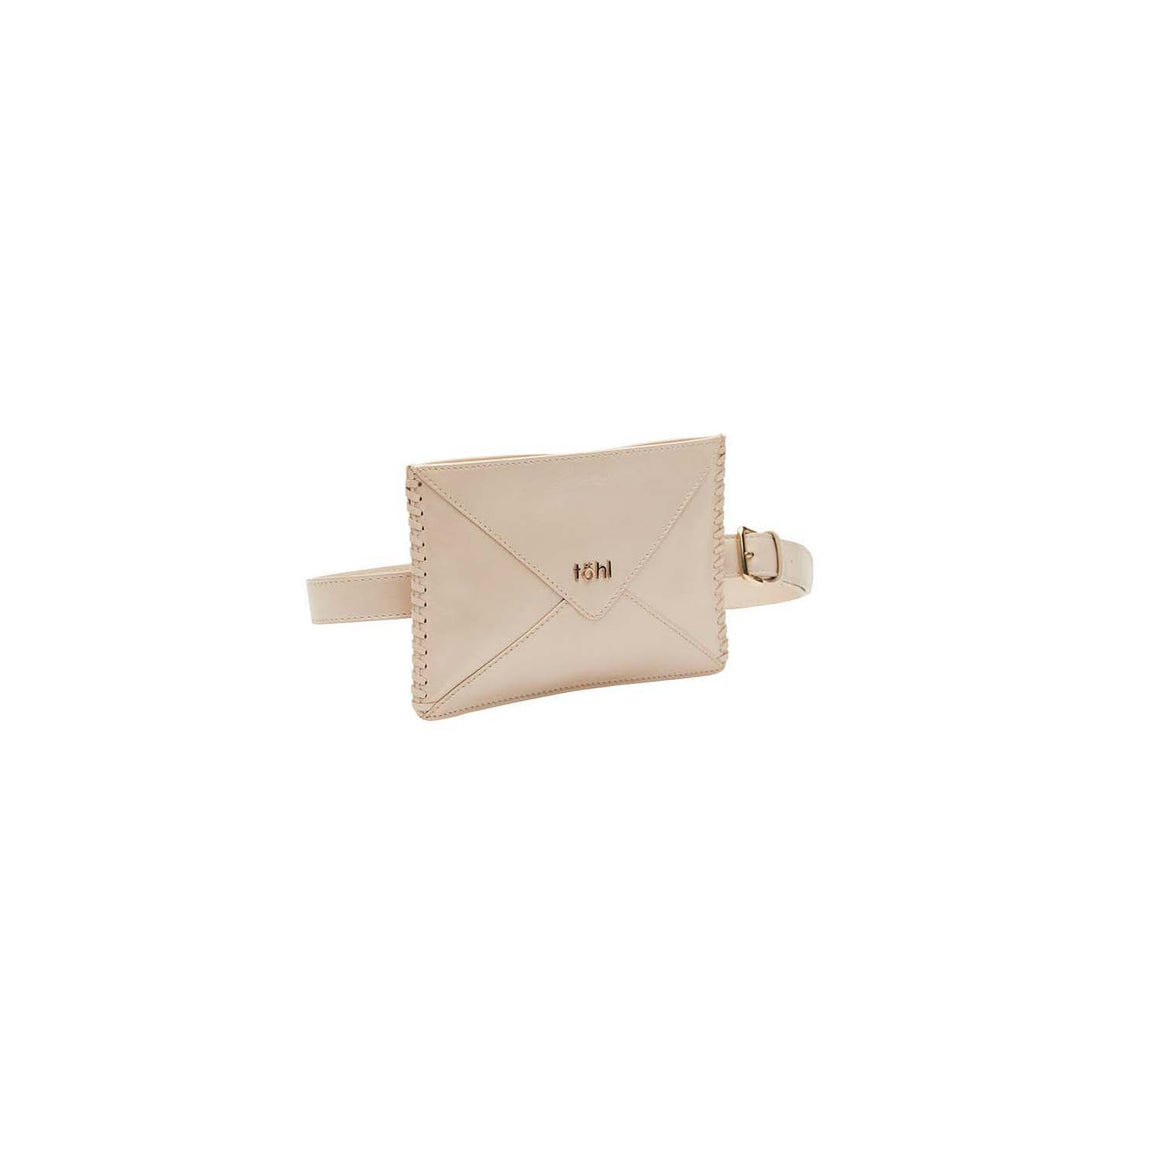 WP 0002 - TOHL JUNIPER WOMEN'S WAIST POUCH - CHAMPAGNE PEARL